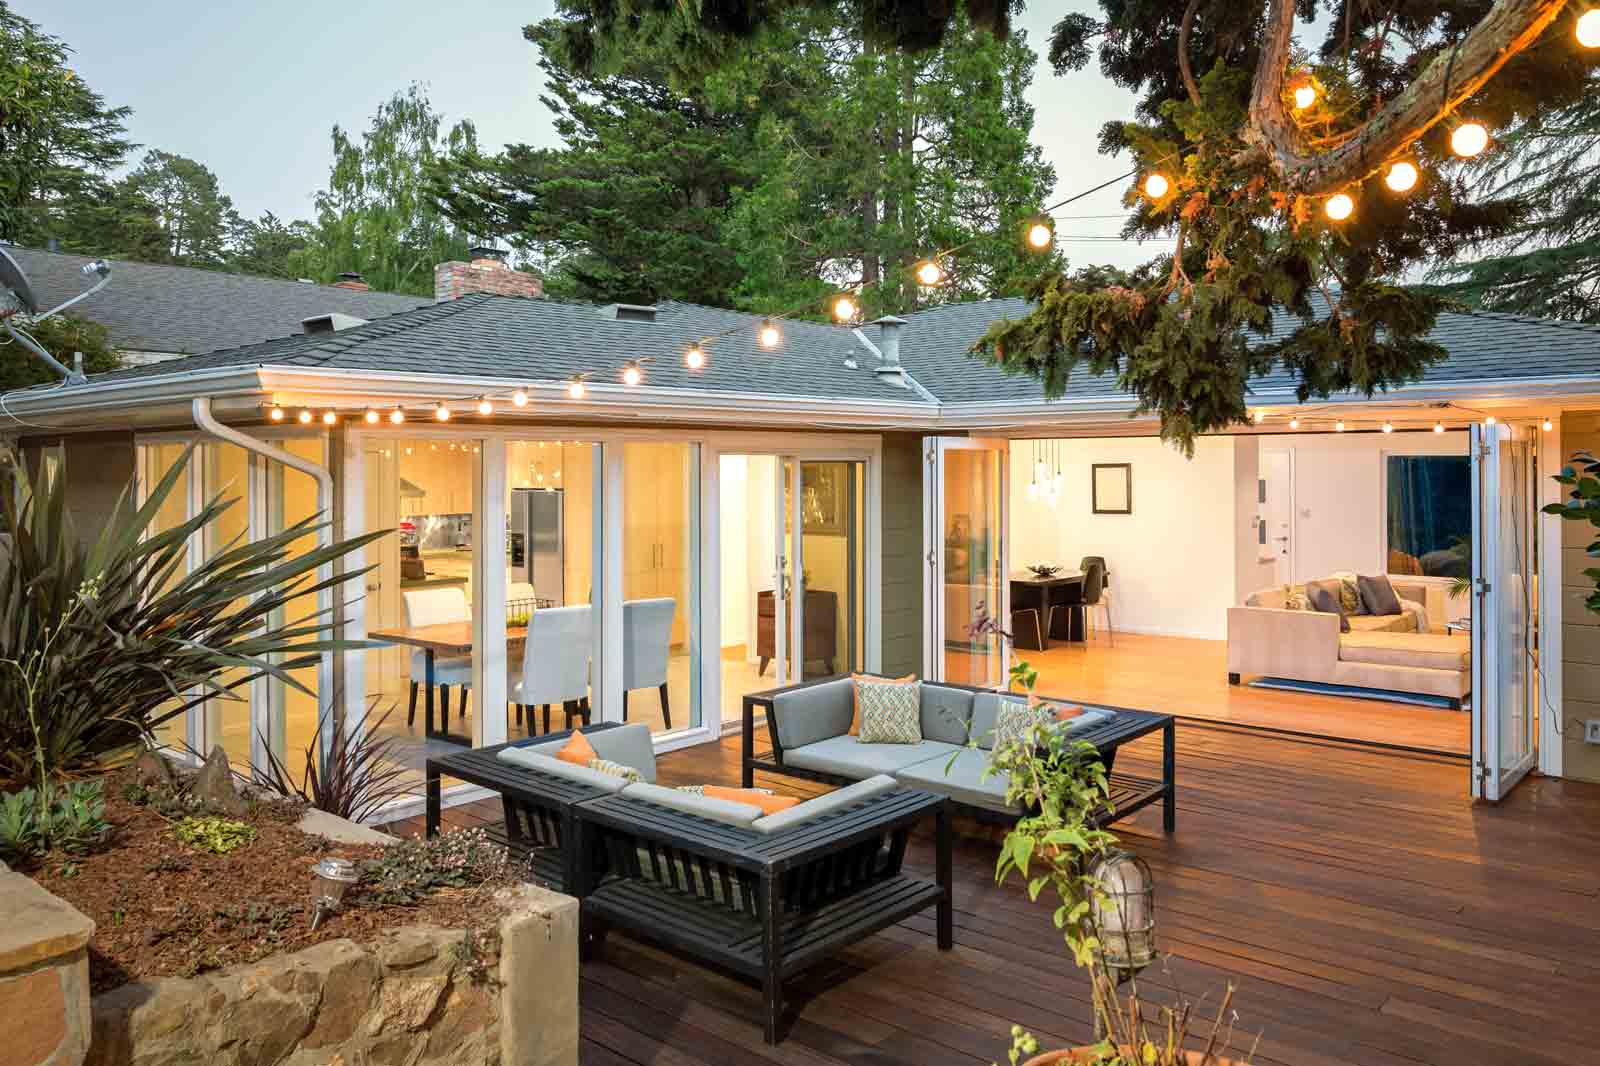 Spring And Summer Are The Best Seasons In San Diego To Enjoy Your Outdoor  Living Space. Maybe You Want To Make A Few Tasteful Upgrades To Get Your  Space ...